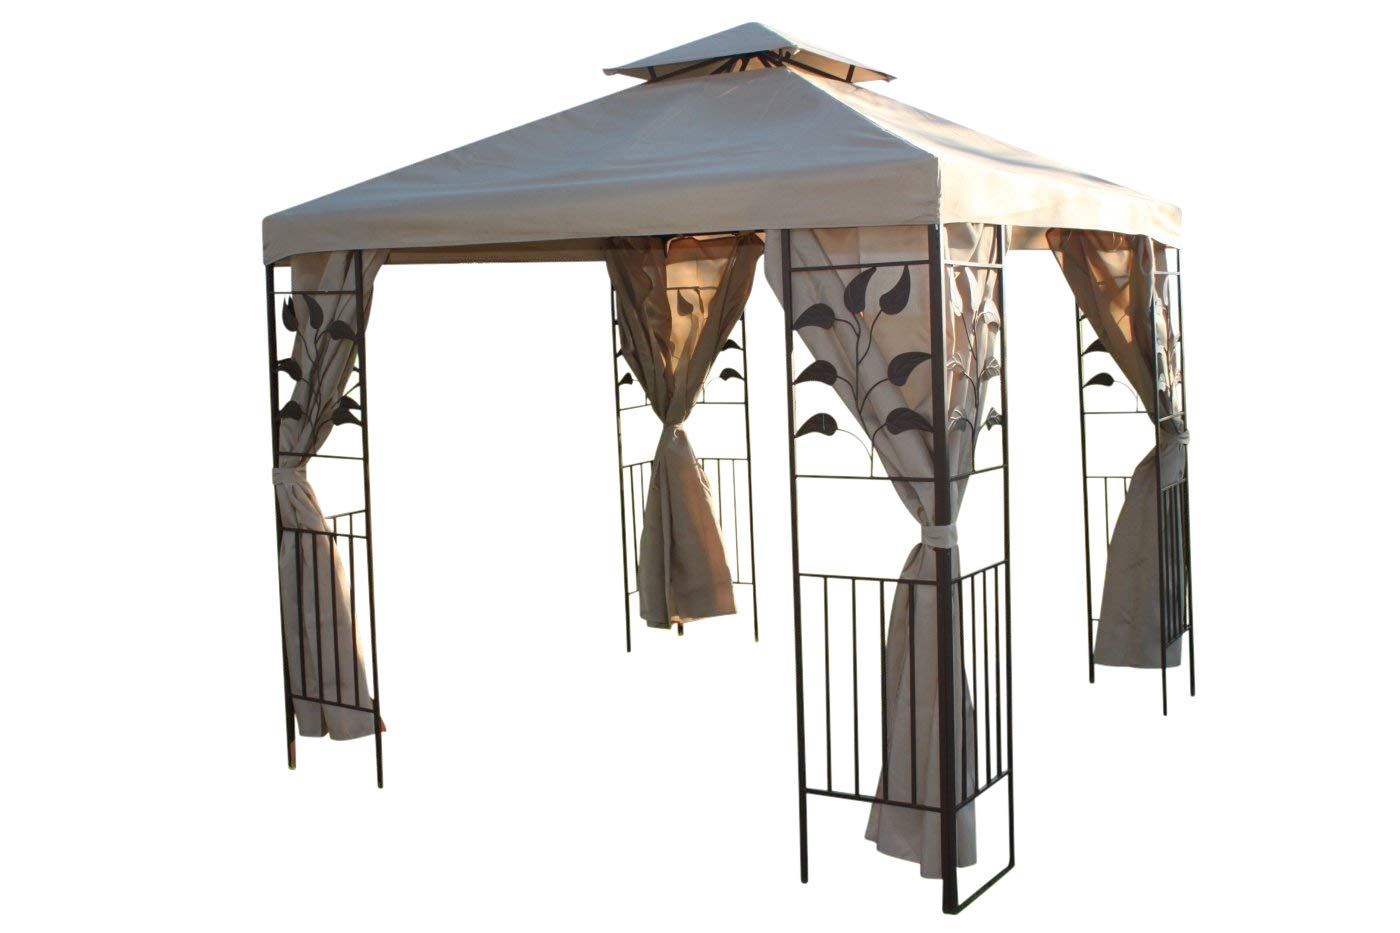 Leaf Design 2.5M Square Garden Gazebo-Beige Cover & 4 Polyester Curtains With Strong Steel Frame-REDUCED Olive Grove